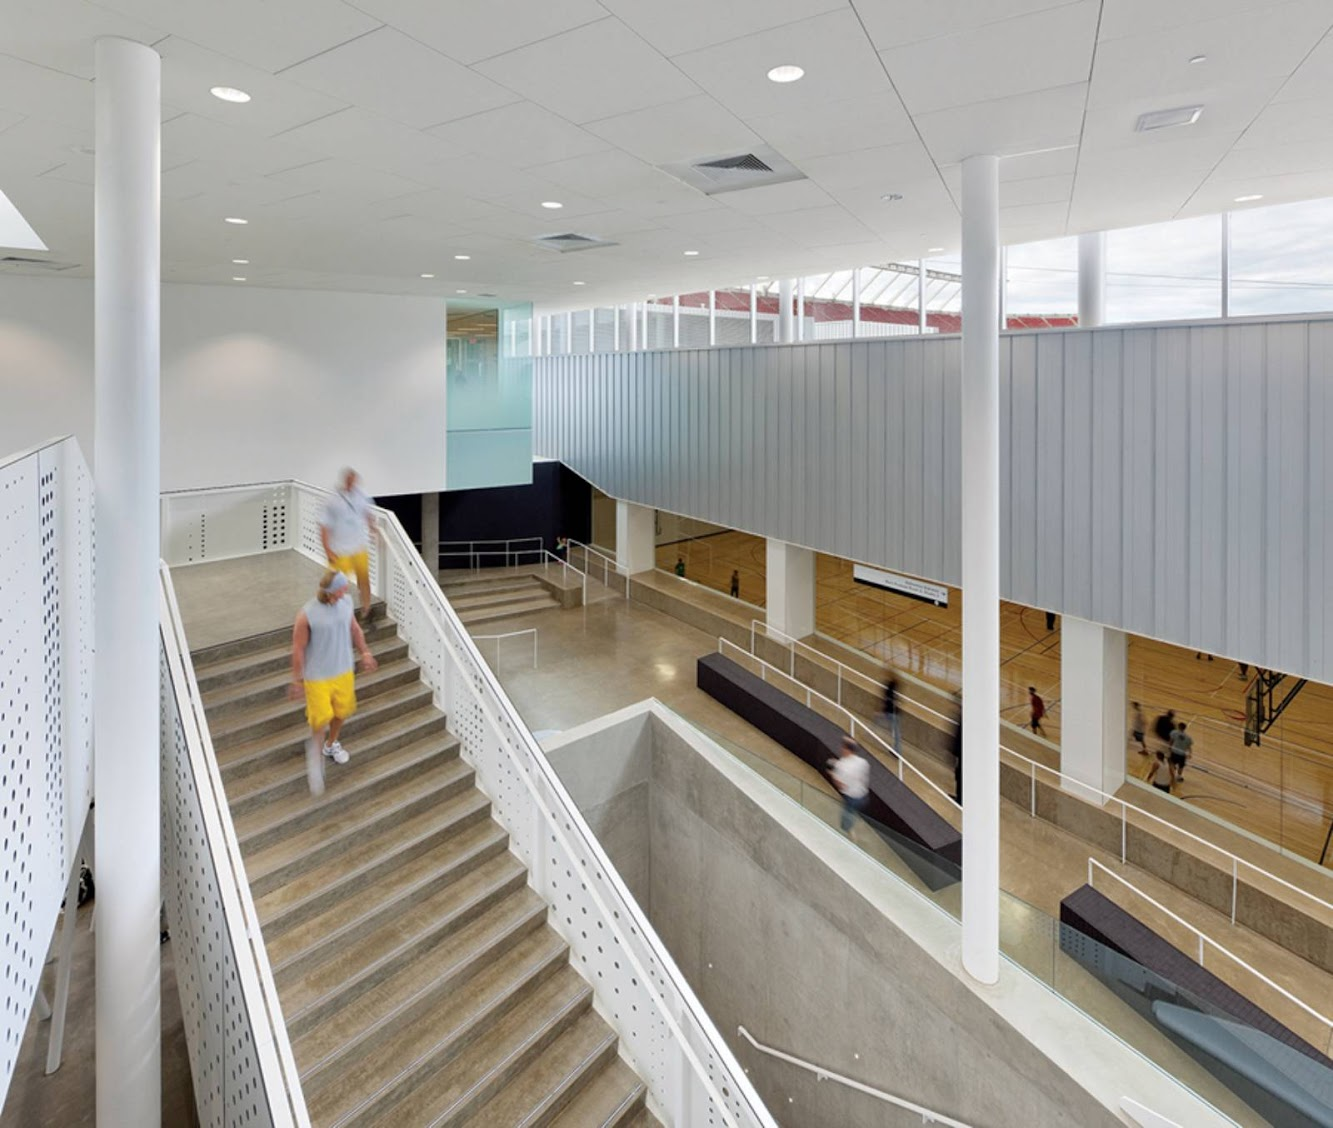 Commonwealth Community Recreation Center by Mjma